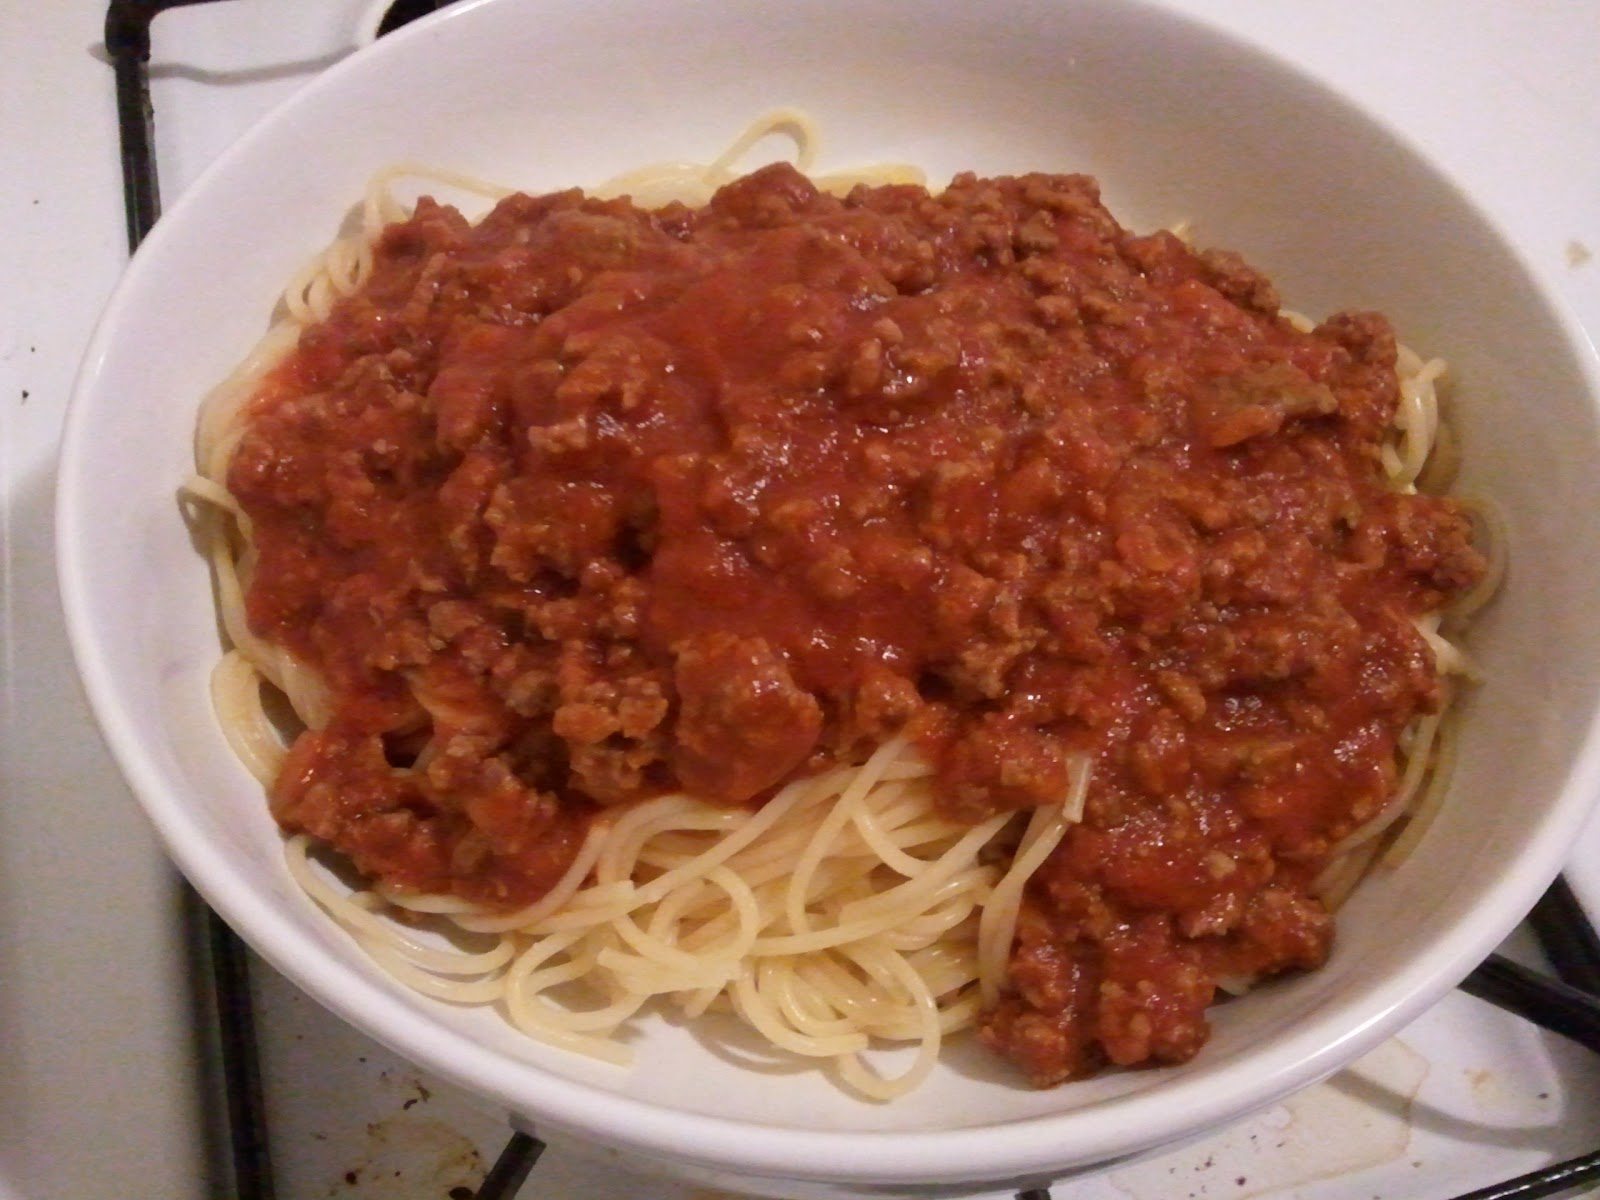 Matt's Spicy Spaghetti with Meat Sauce